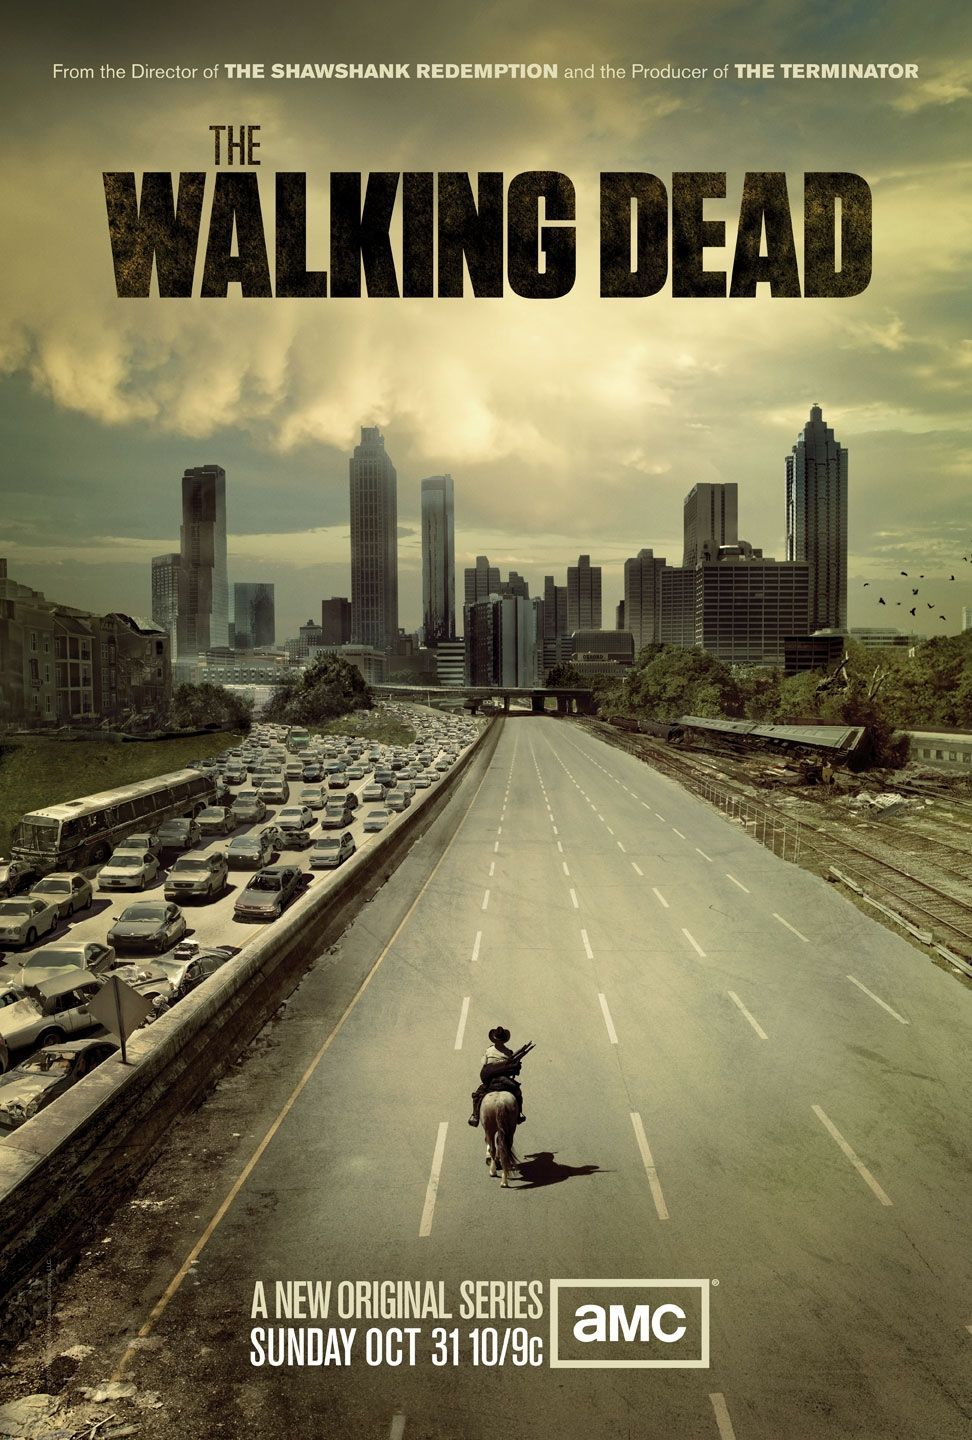 The Walking Dead - Season 1 (Temporada 1) | MOVIE POSTERS ...